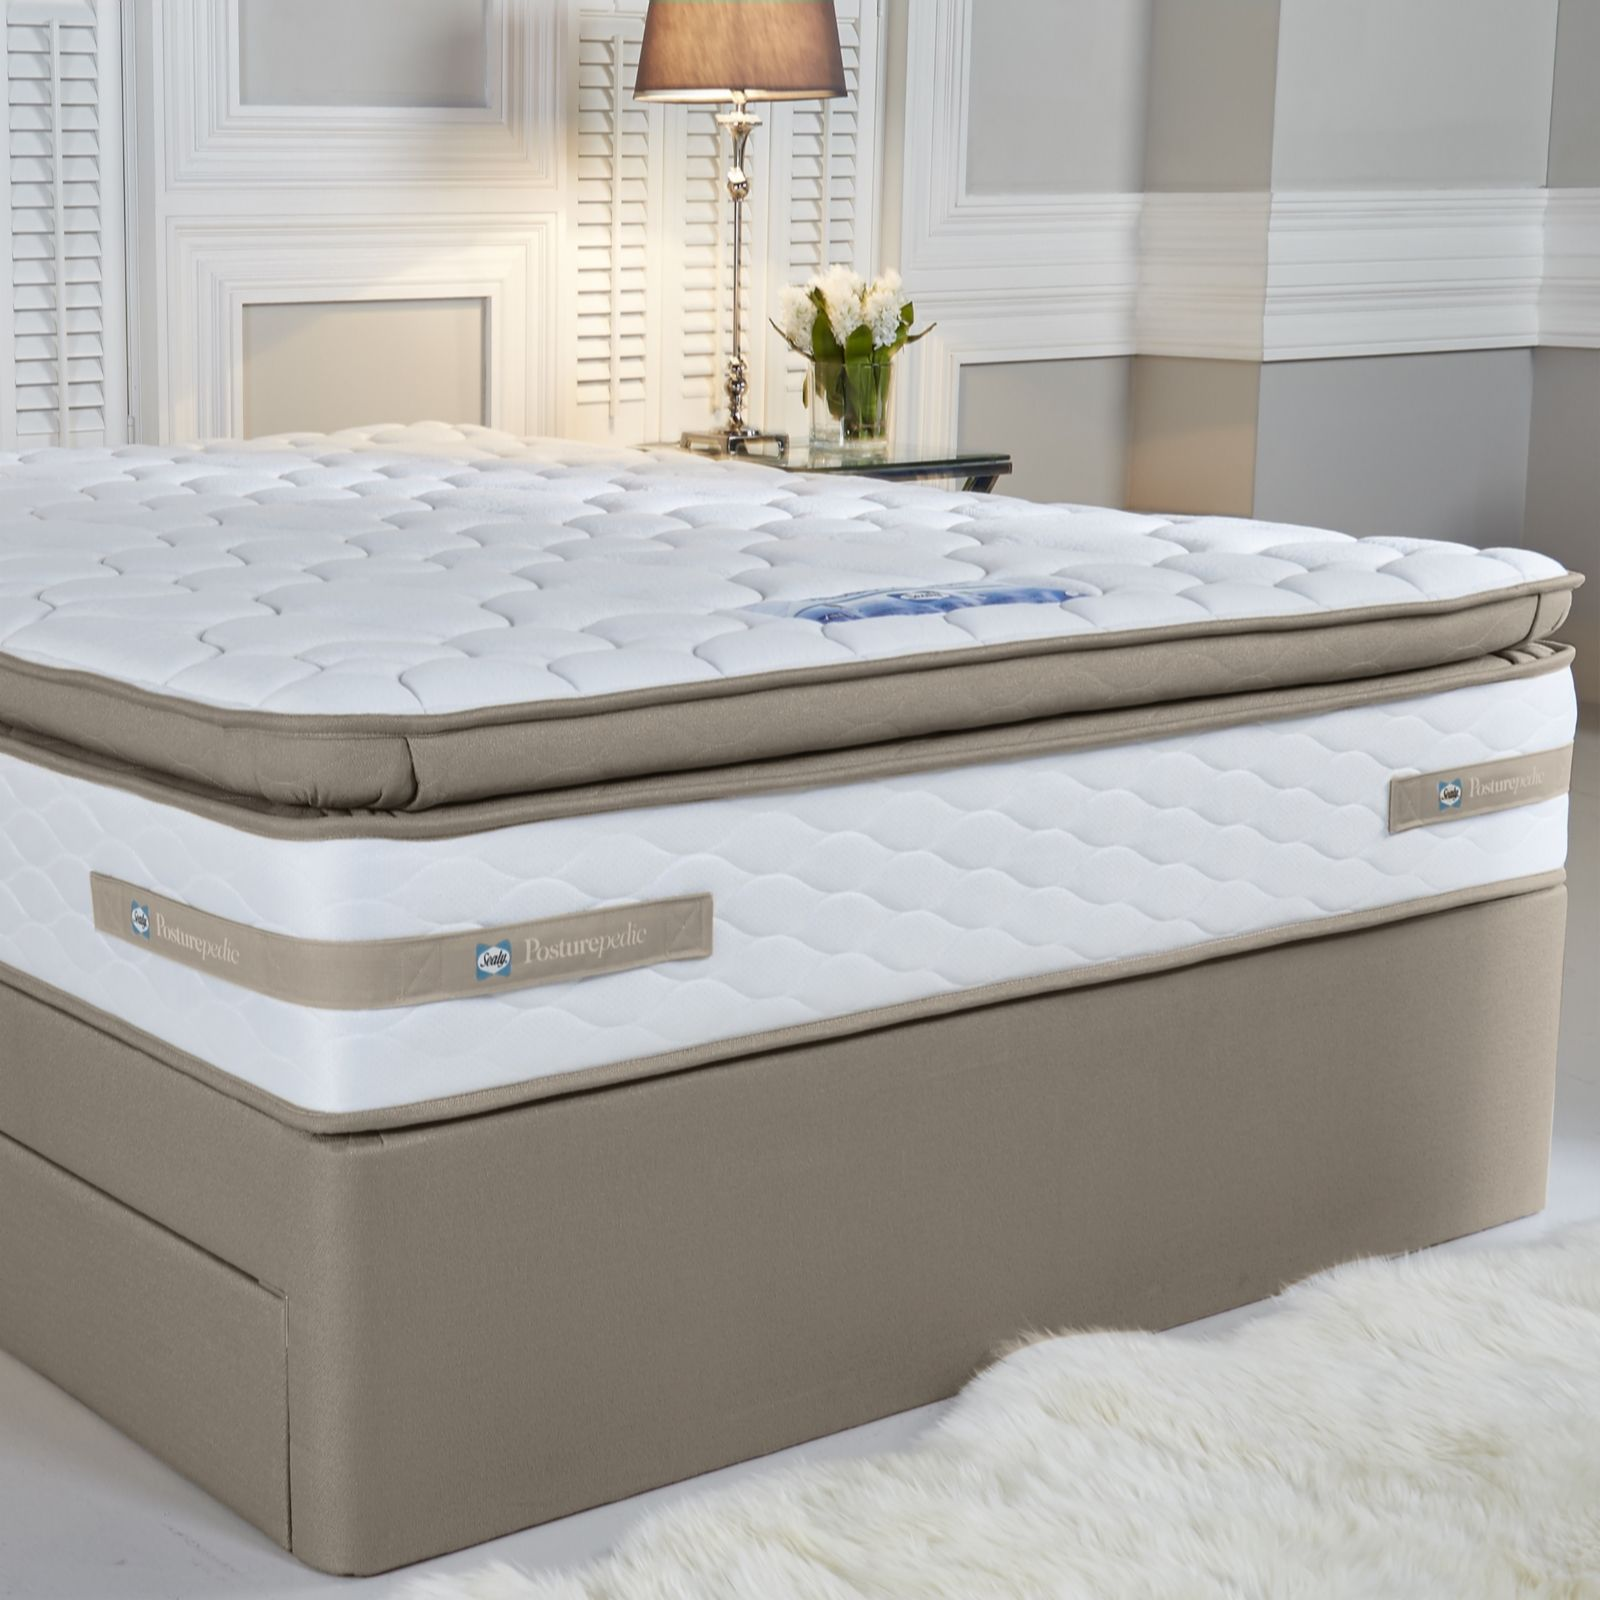 Sealy Posturepedic 660 Spring Geltex Pillow Top Mattress